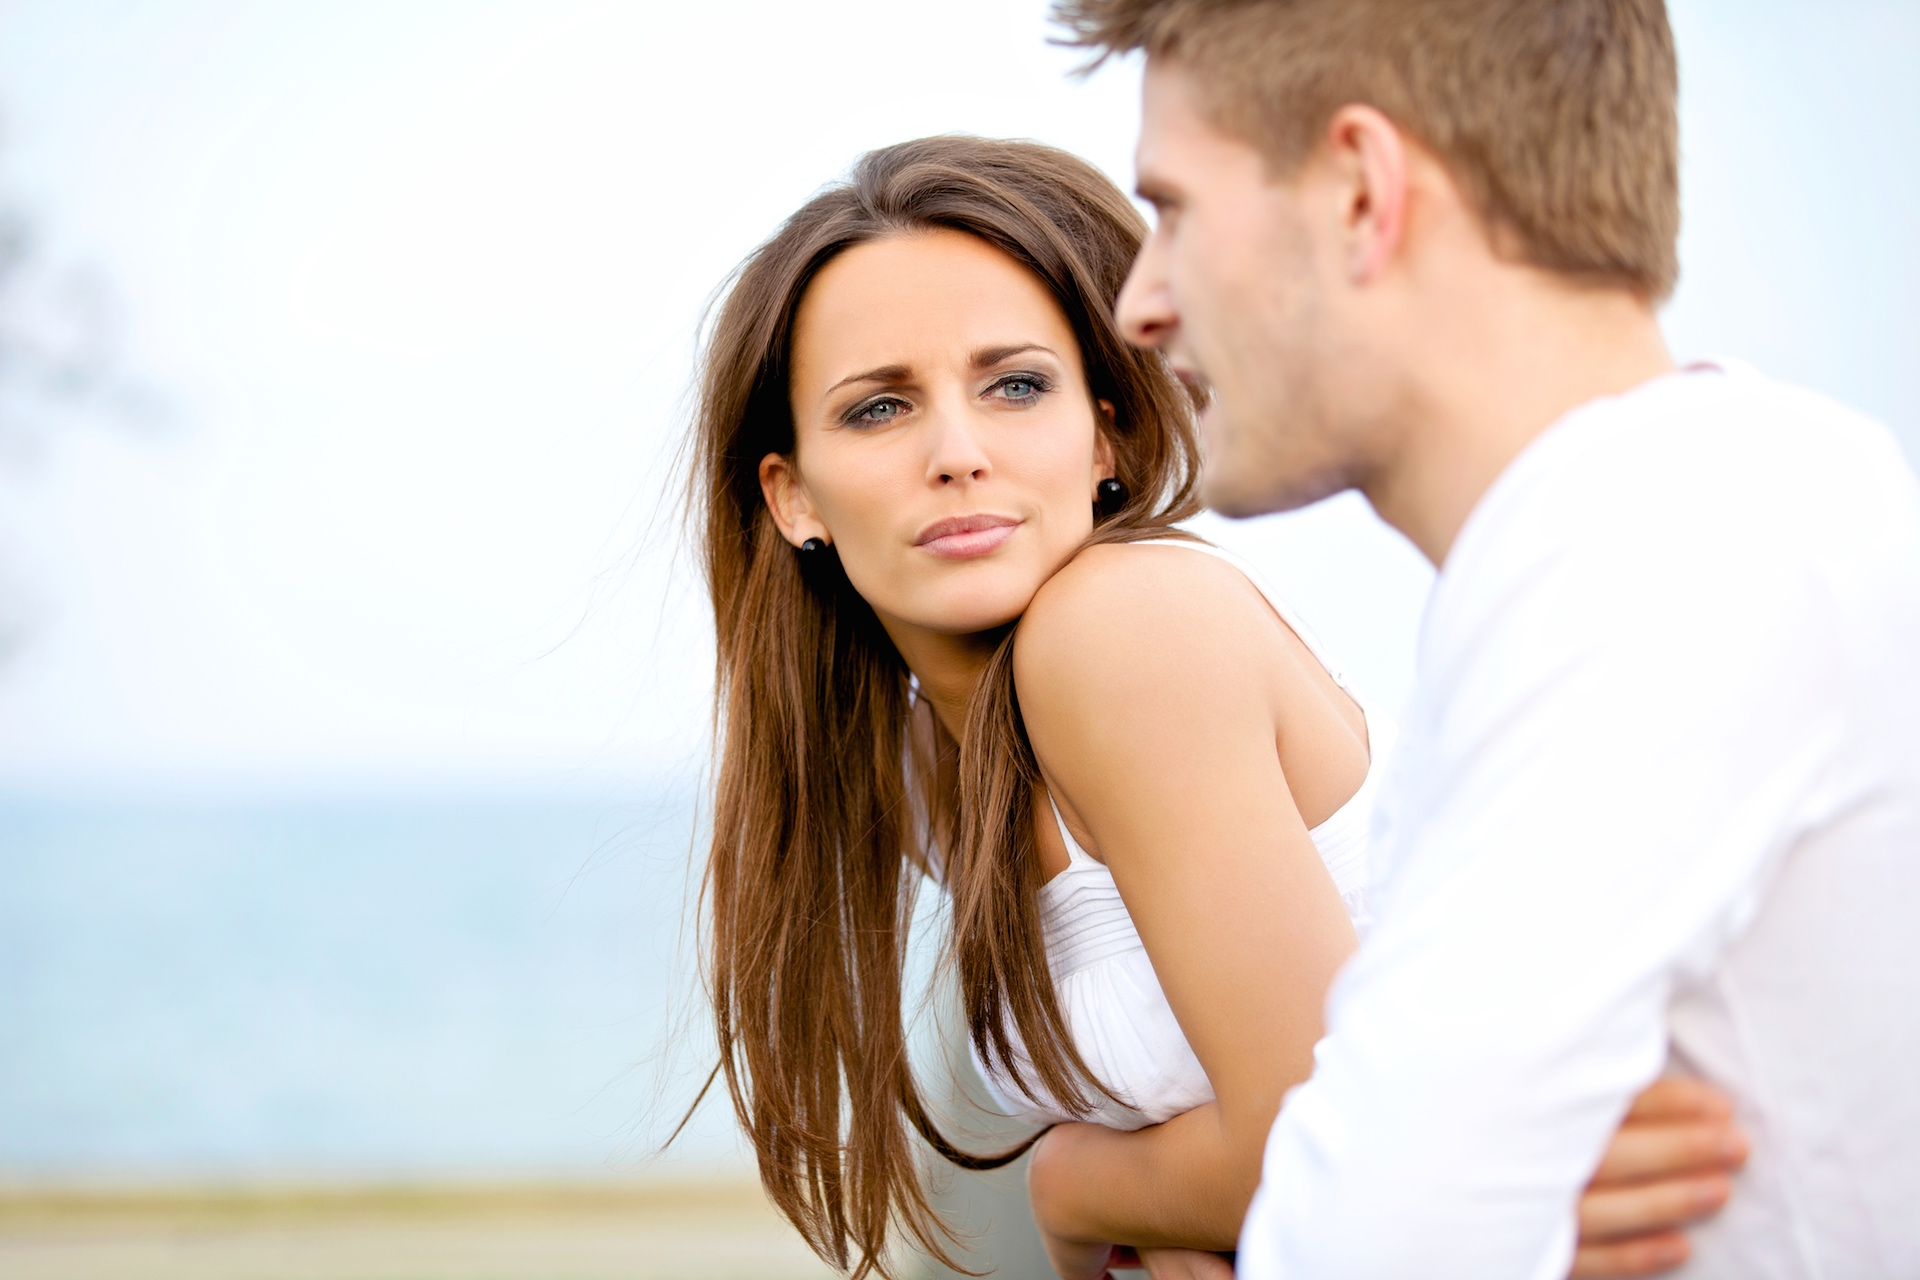 Indecisive men and dating